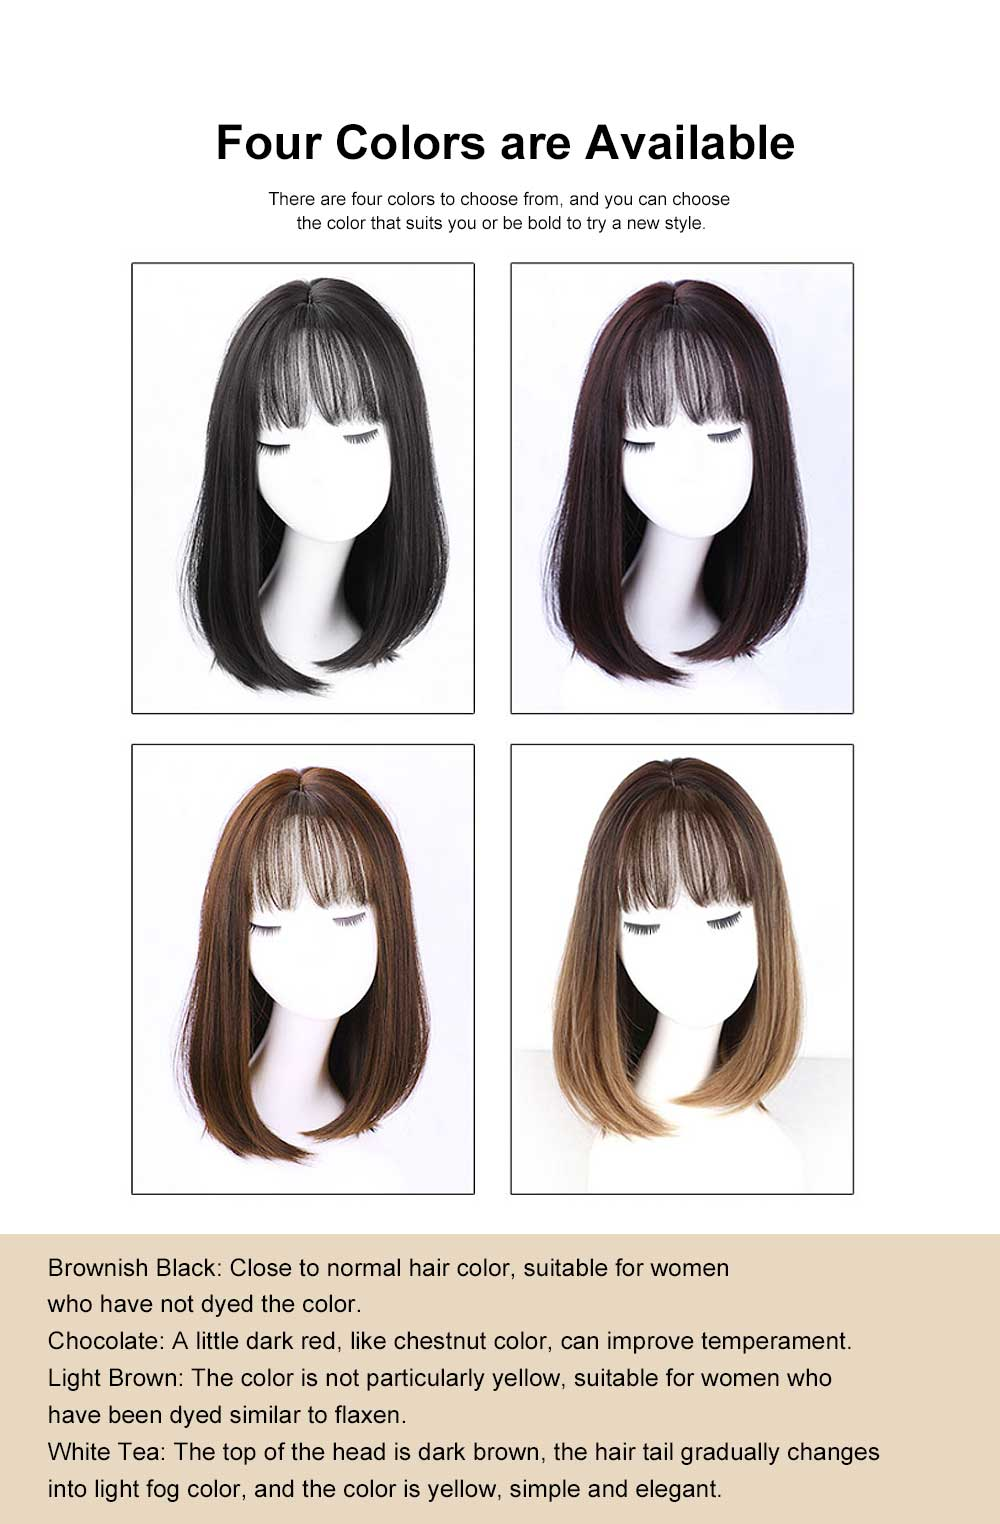 Middle-length Fake Hair for Women, Natural Cute Curly Long Hair with Bangs Head Type Round Face Short Wig 5